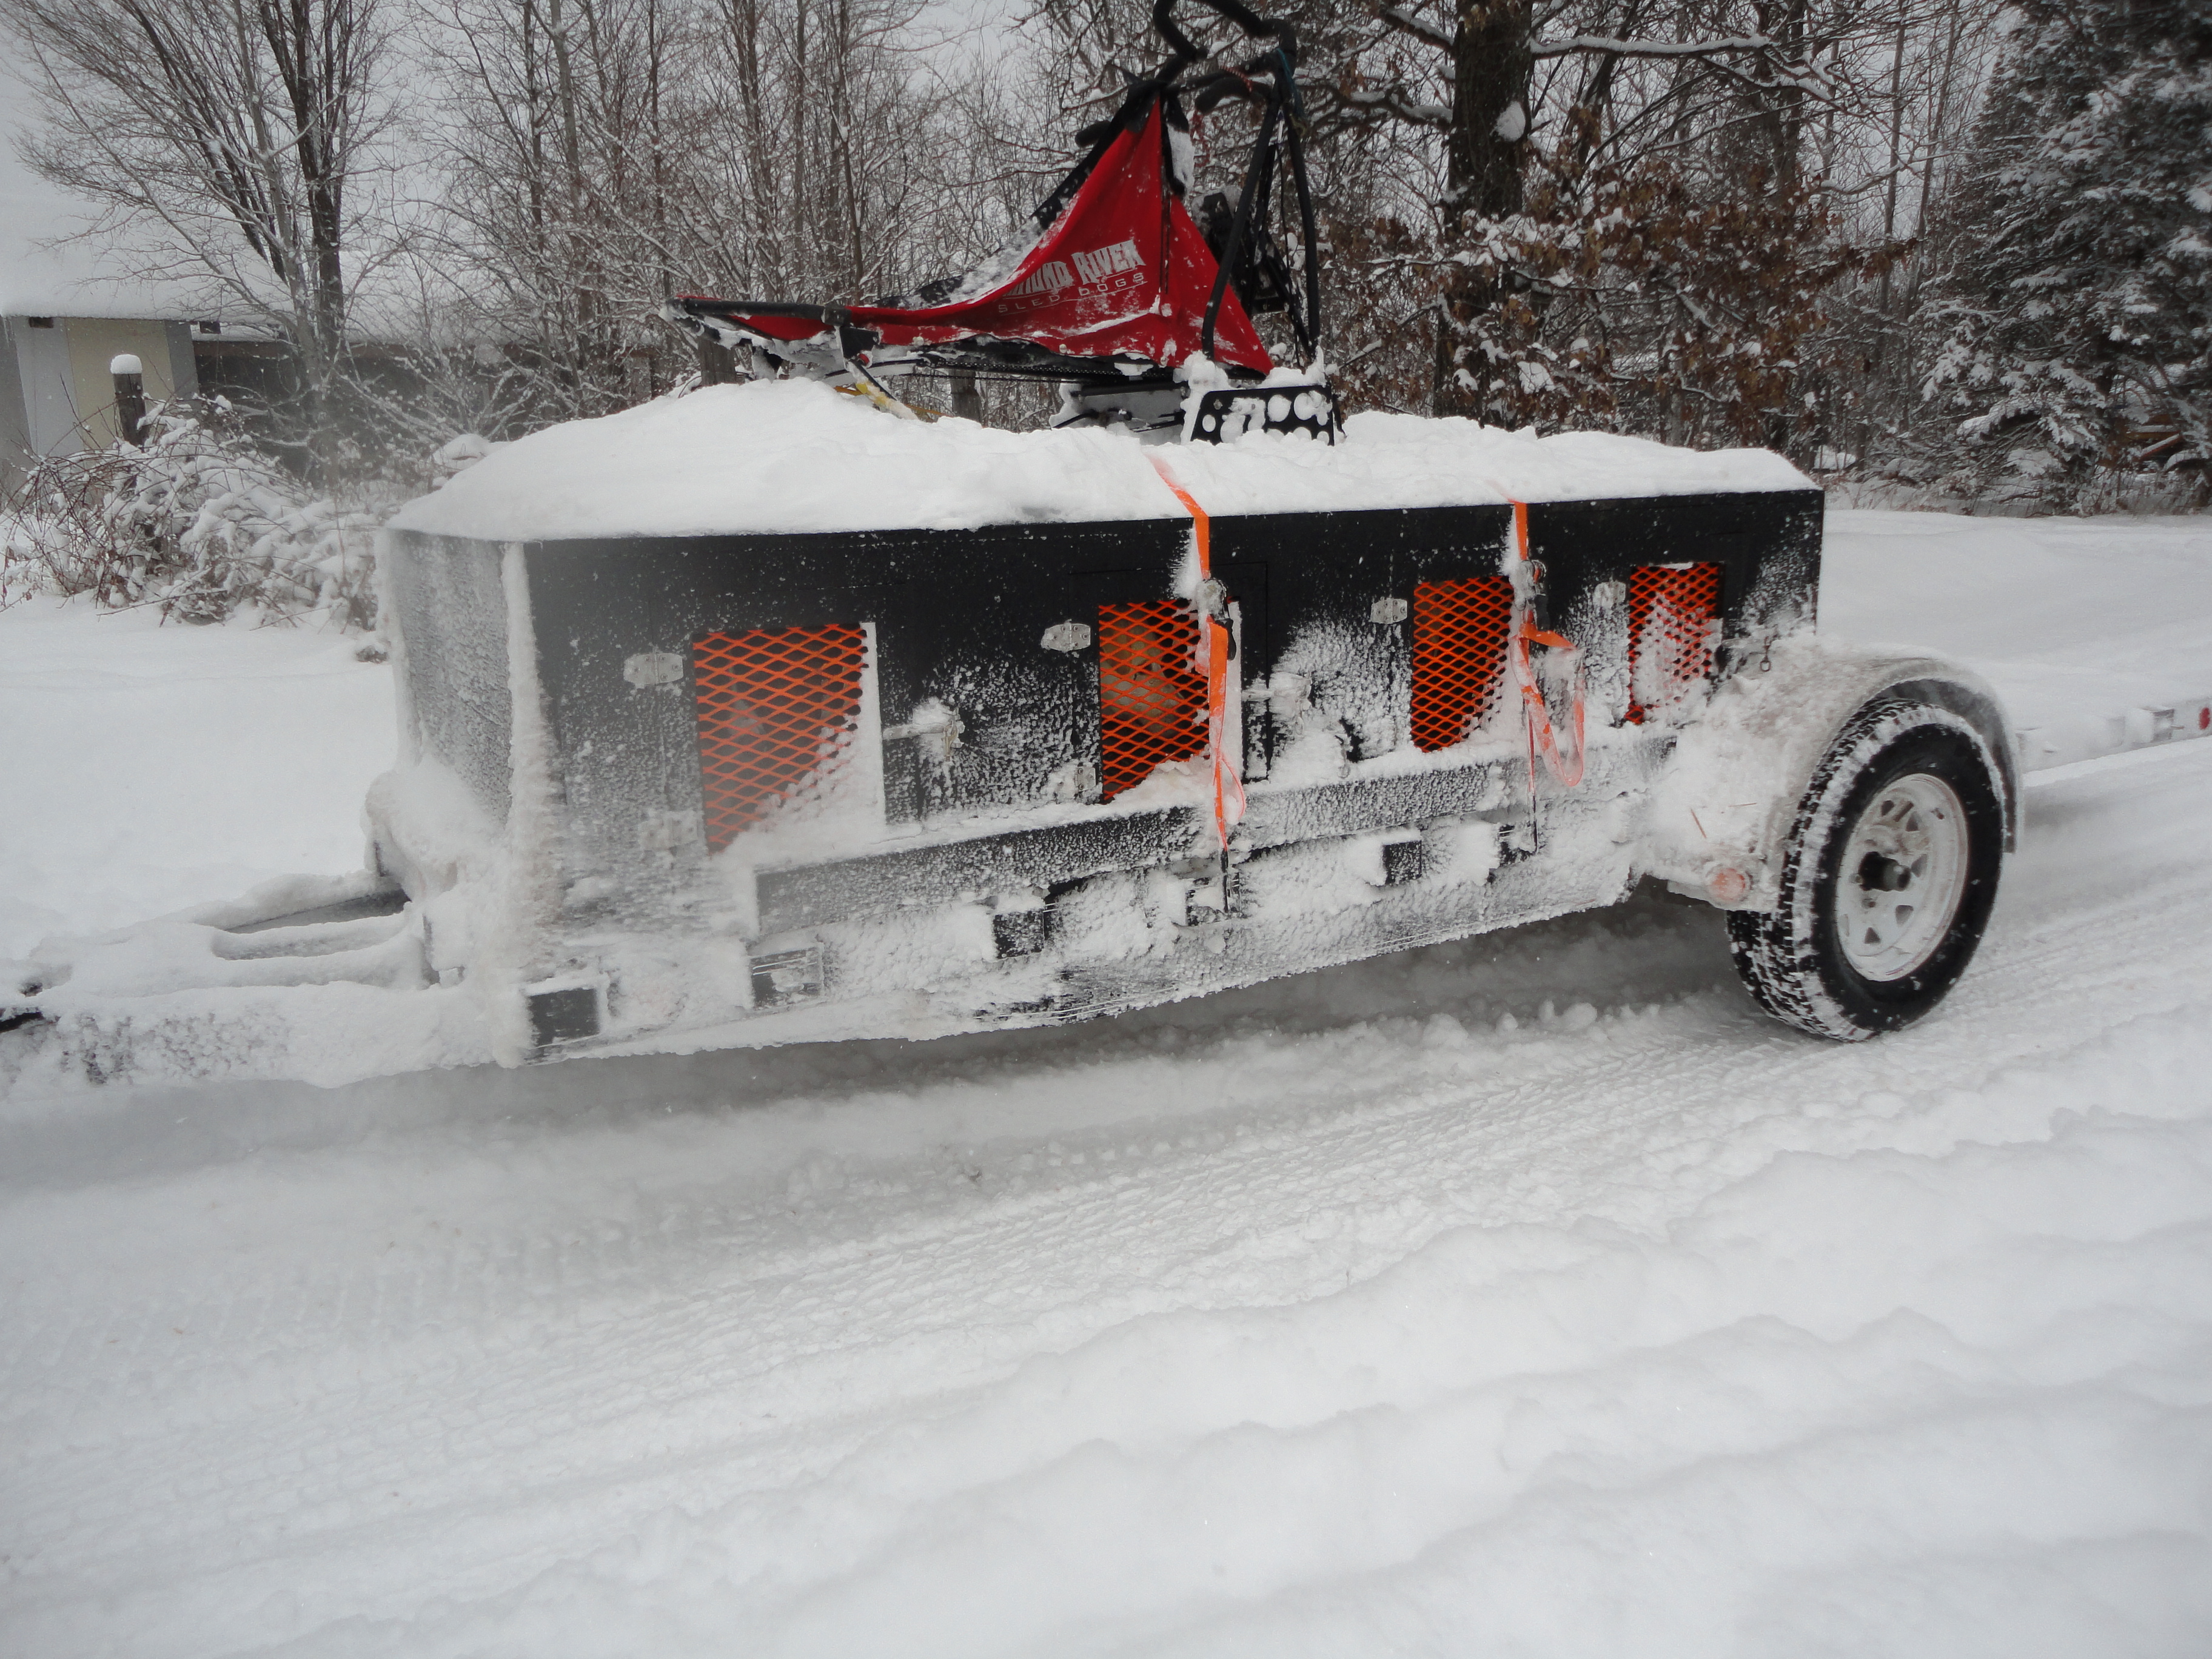 About Sprint Racing Sled Dogs and the Eurohound